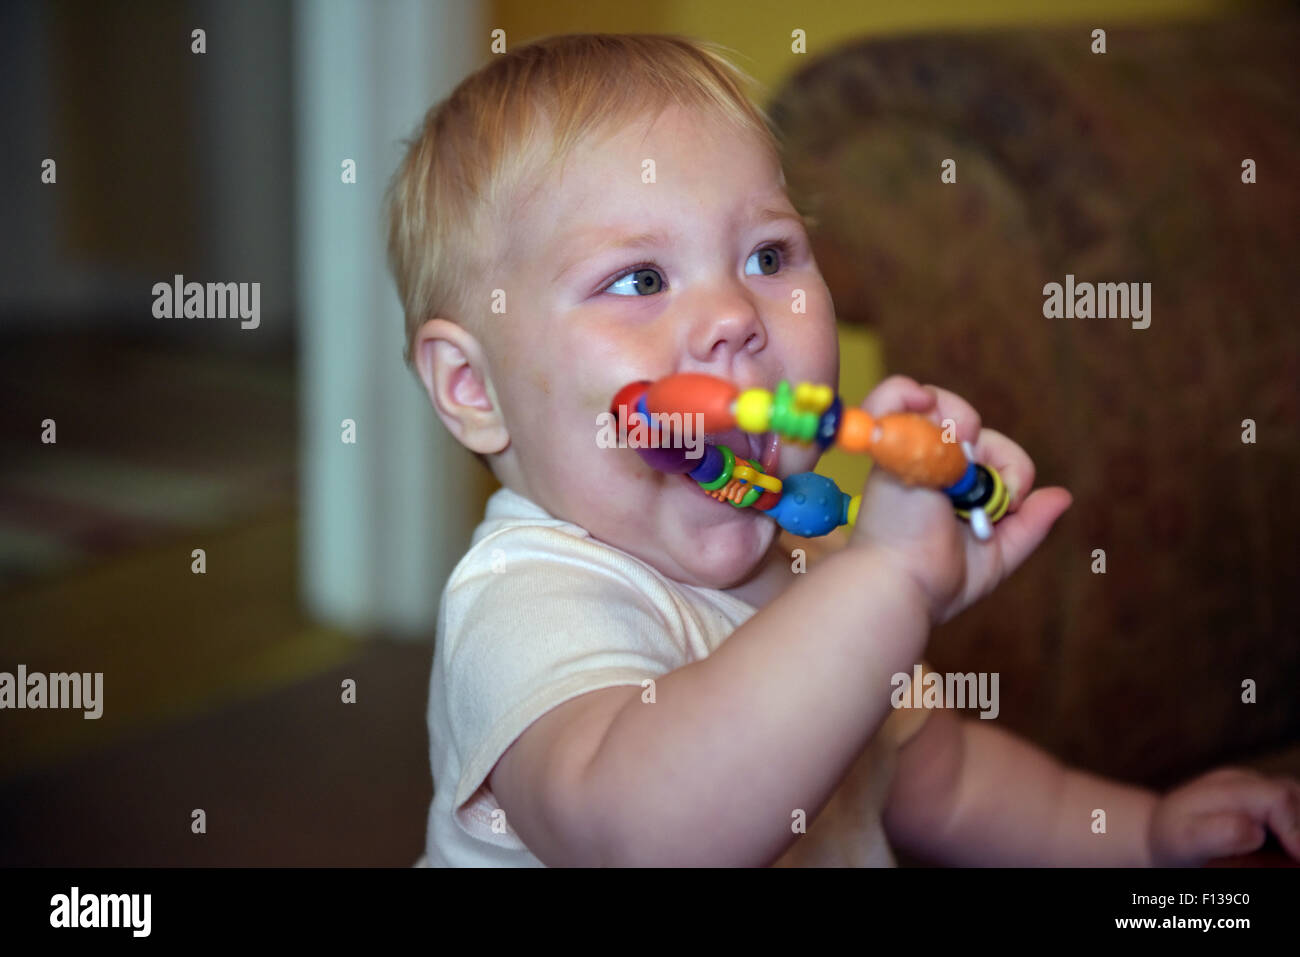 An eleven month old baby chewing on a plastic teething ring to alleviate the pain and discomfort of tooth ache. - Stock Image